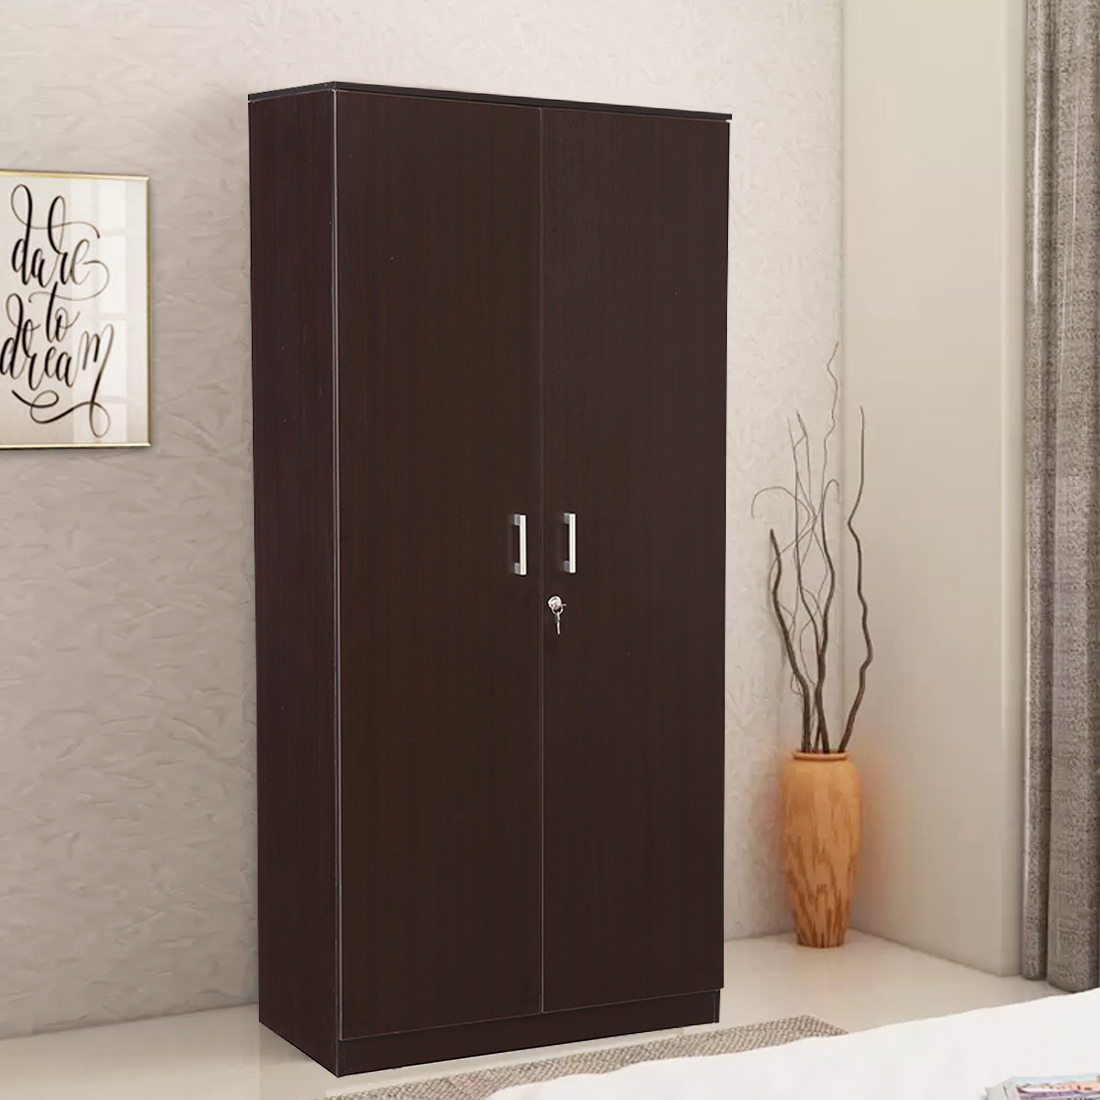 Prime Engineered Wood Two Door Wardrobe in Wenge Colour by HomeTown